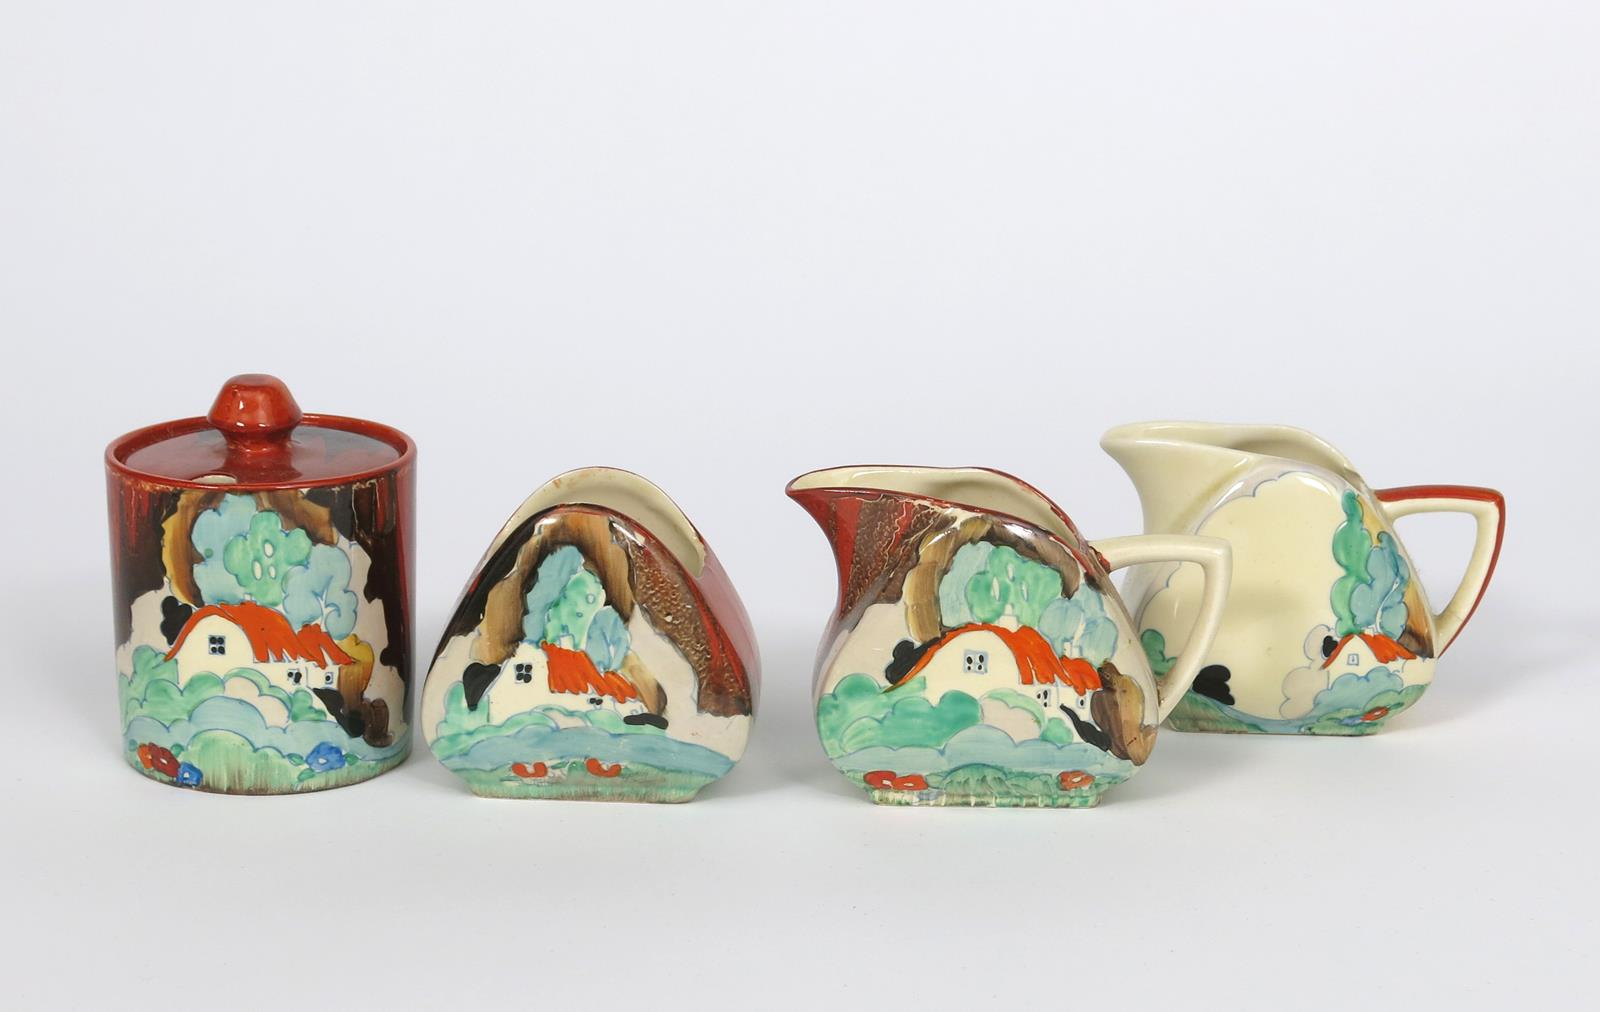 'Forest Glen' a Clarice Cliff Cylindrical preserve pot and cover, painted in colours, a Forest